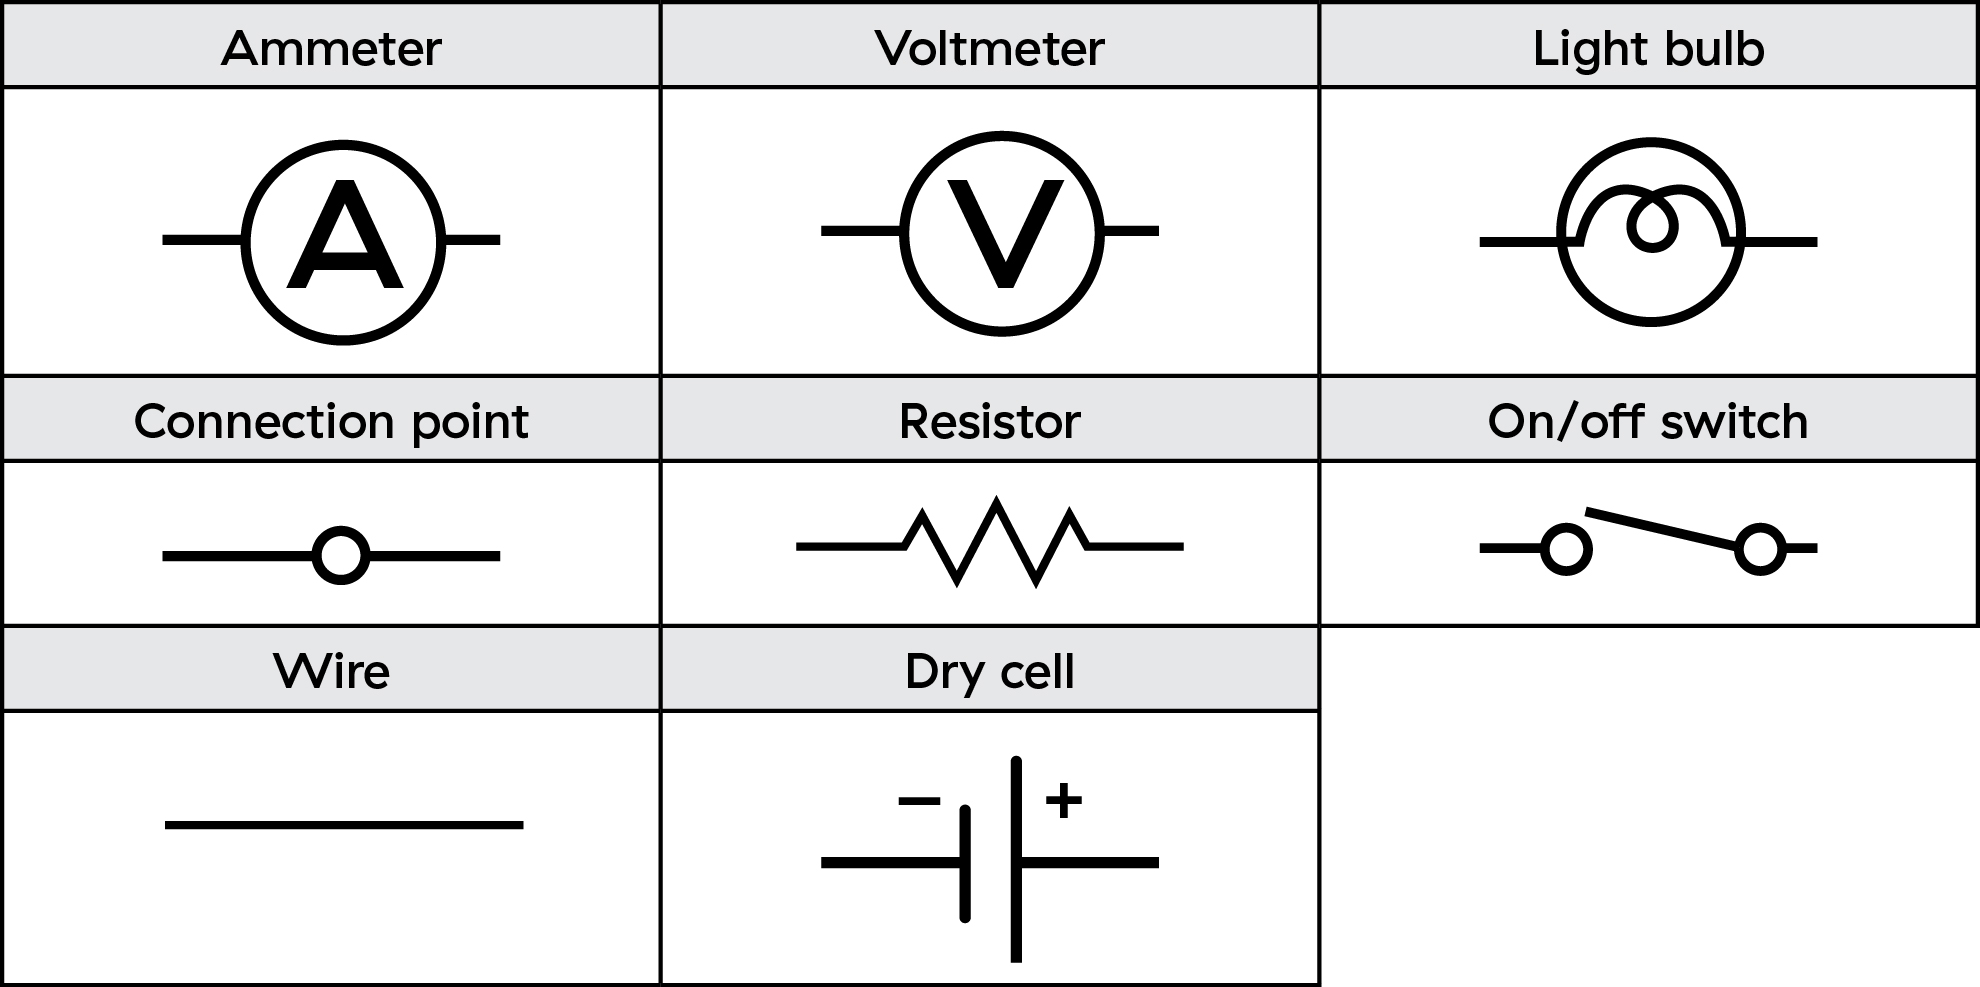 Exploring Simple Circuits Bchydro Power Smart For Schools Electrical Circuit Diagram Begin A Discussion About To Gauge What Your Students Know Make Sure They Understand The Symbols That Are Used In Diagrams